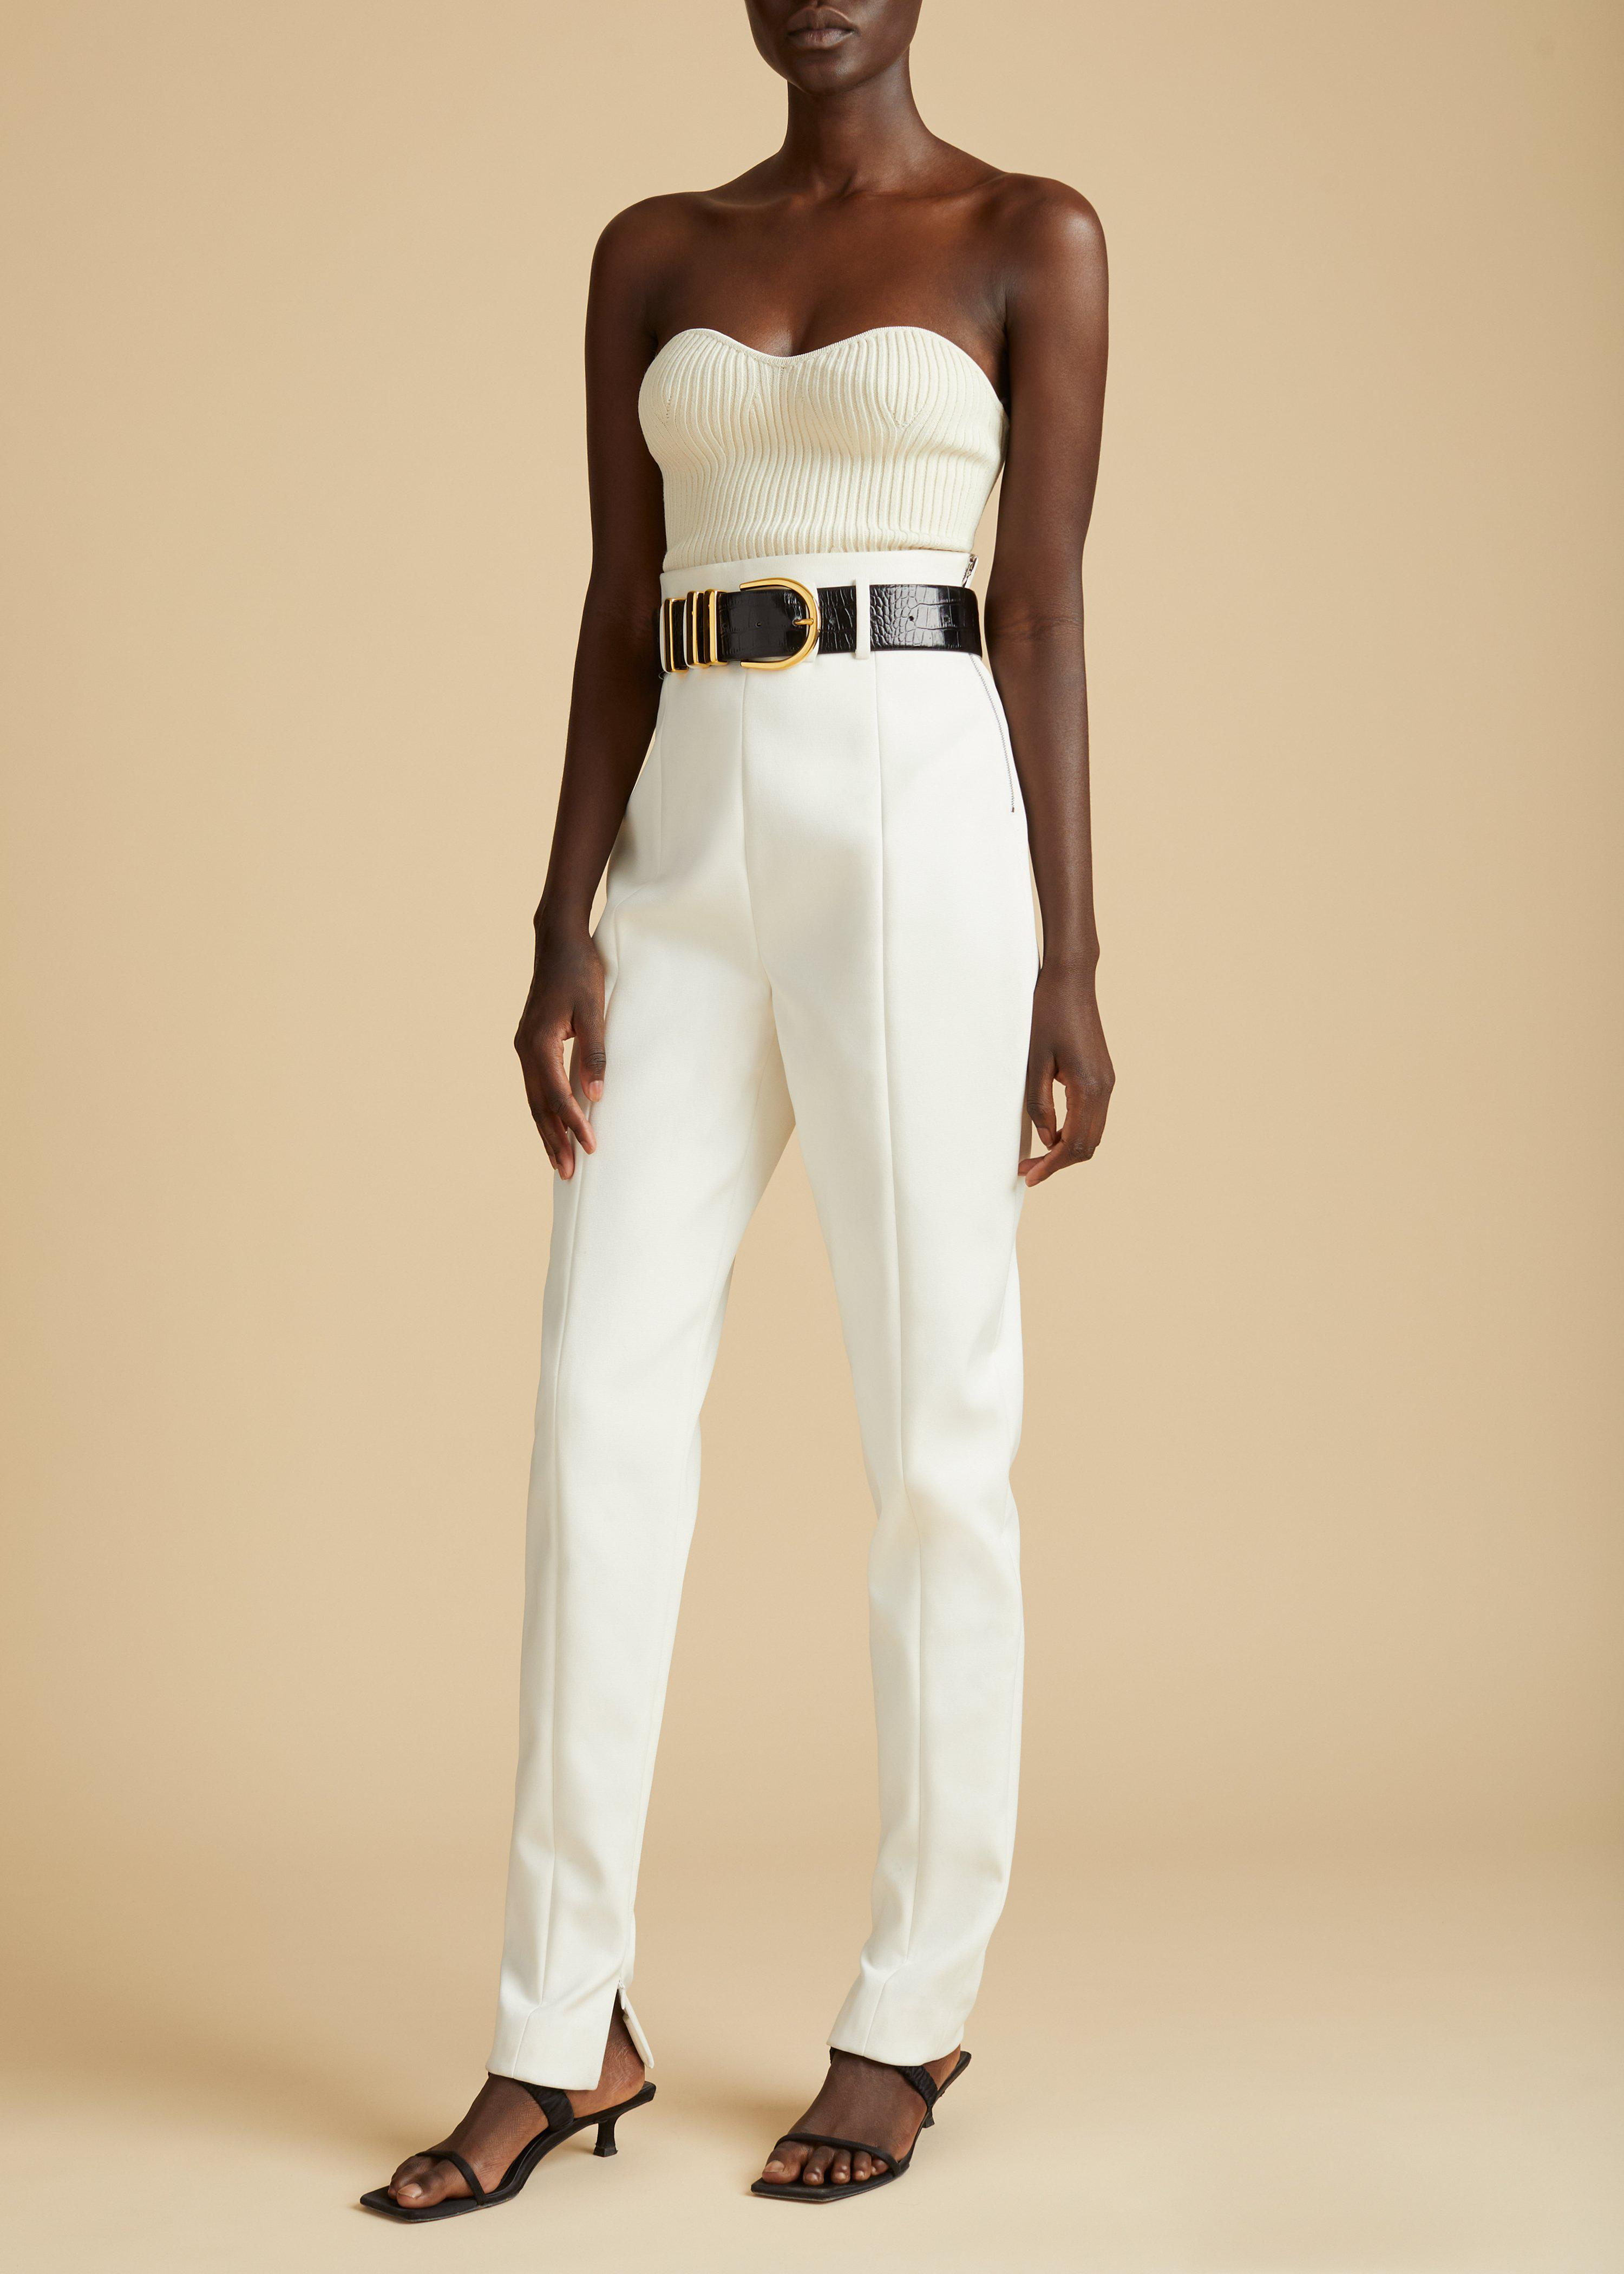 The Lucie Top in Cream 1